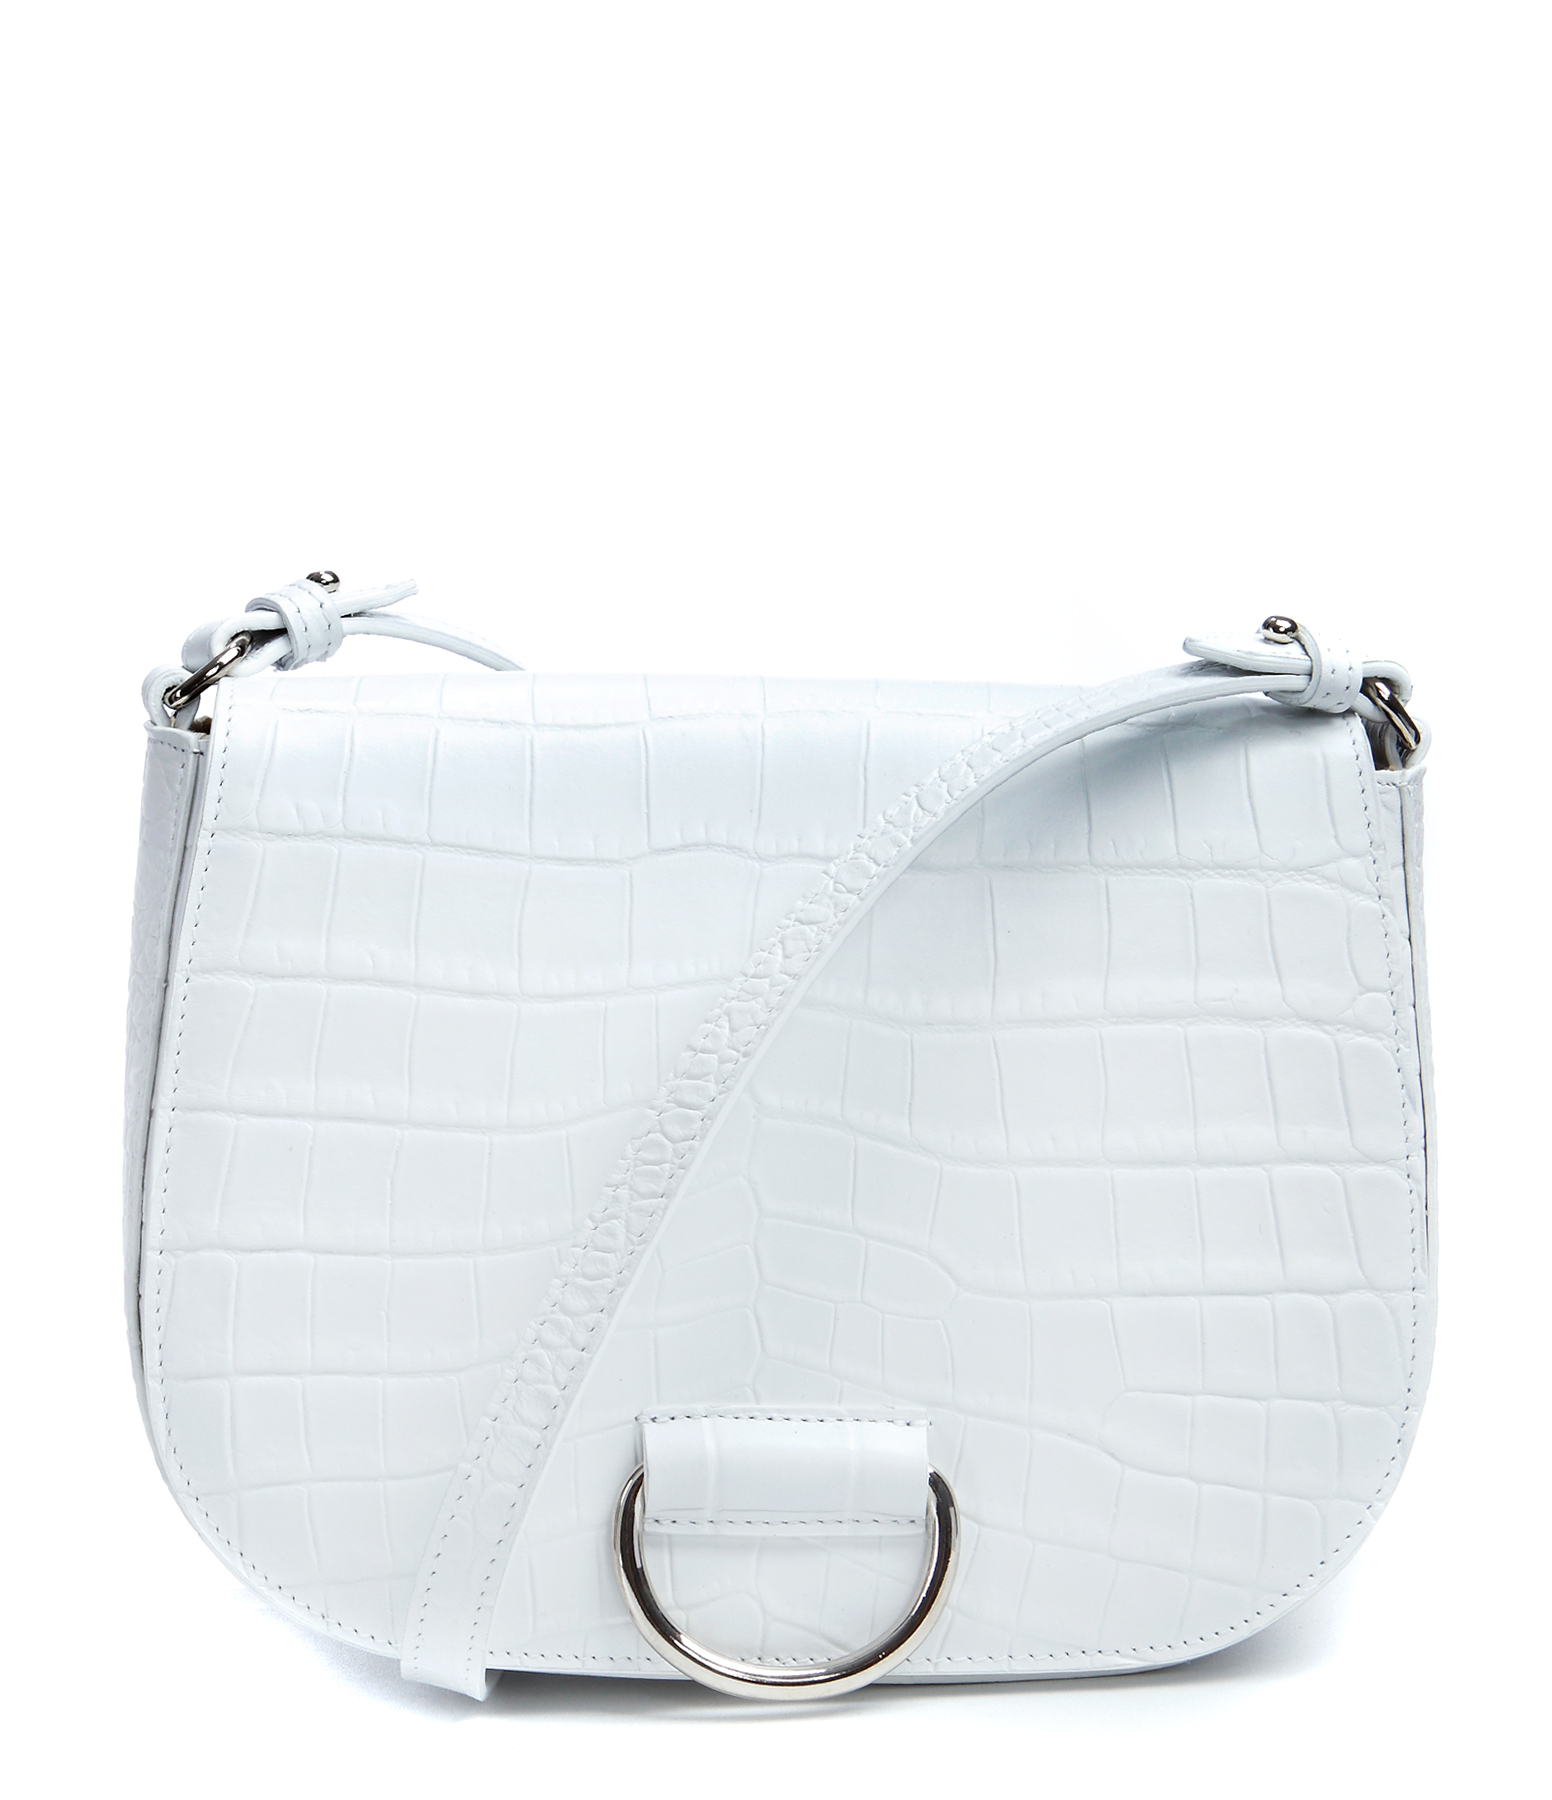 Sac Besace Saddle M Crocodile Effect Veau Blanc